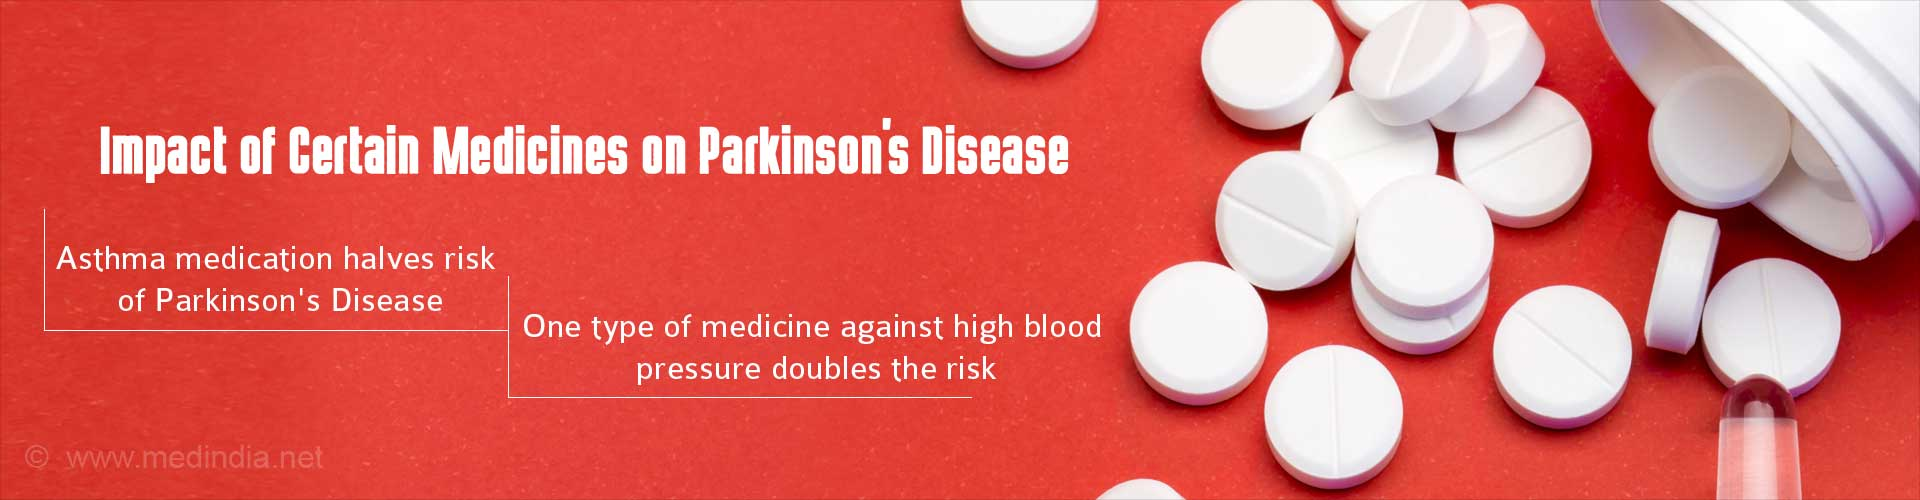 Impact of certain medicines on Parkinson's Disease